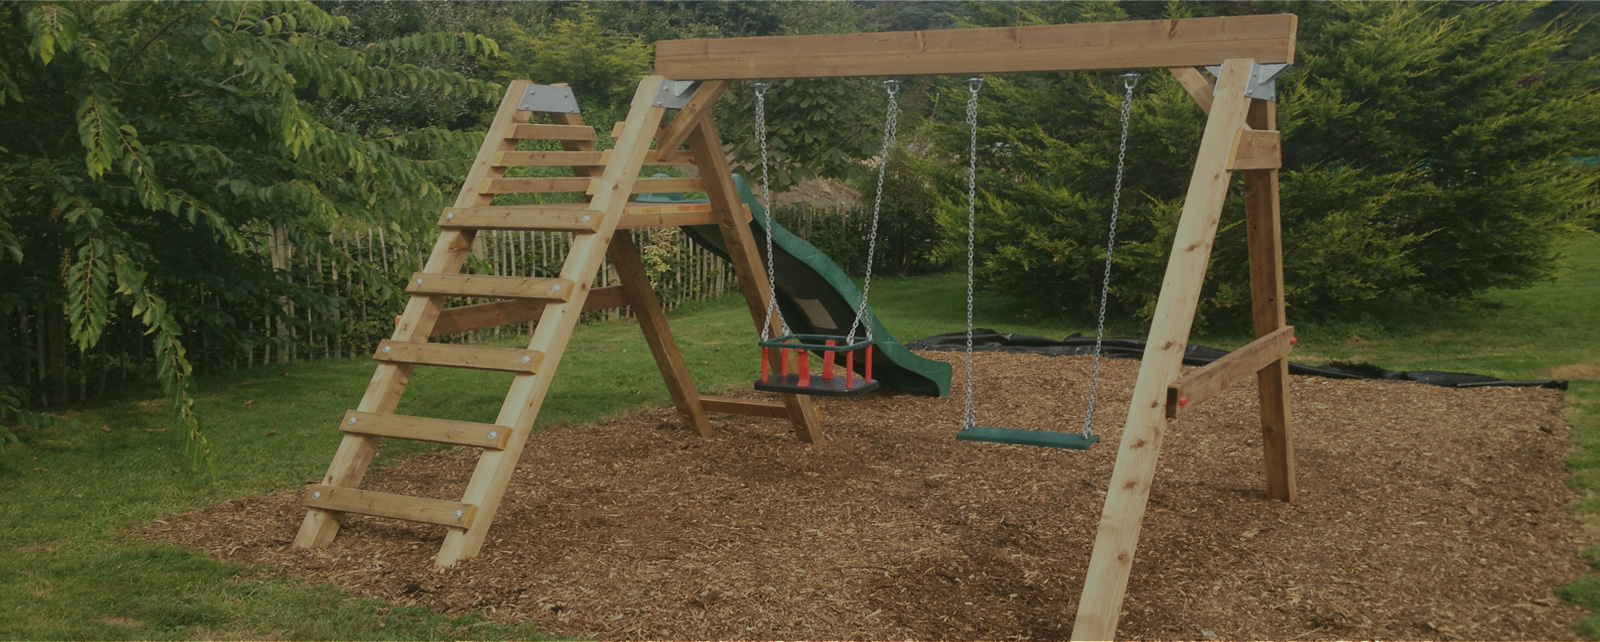 Garden Fun Swings Slides Playcentres (5)